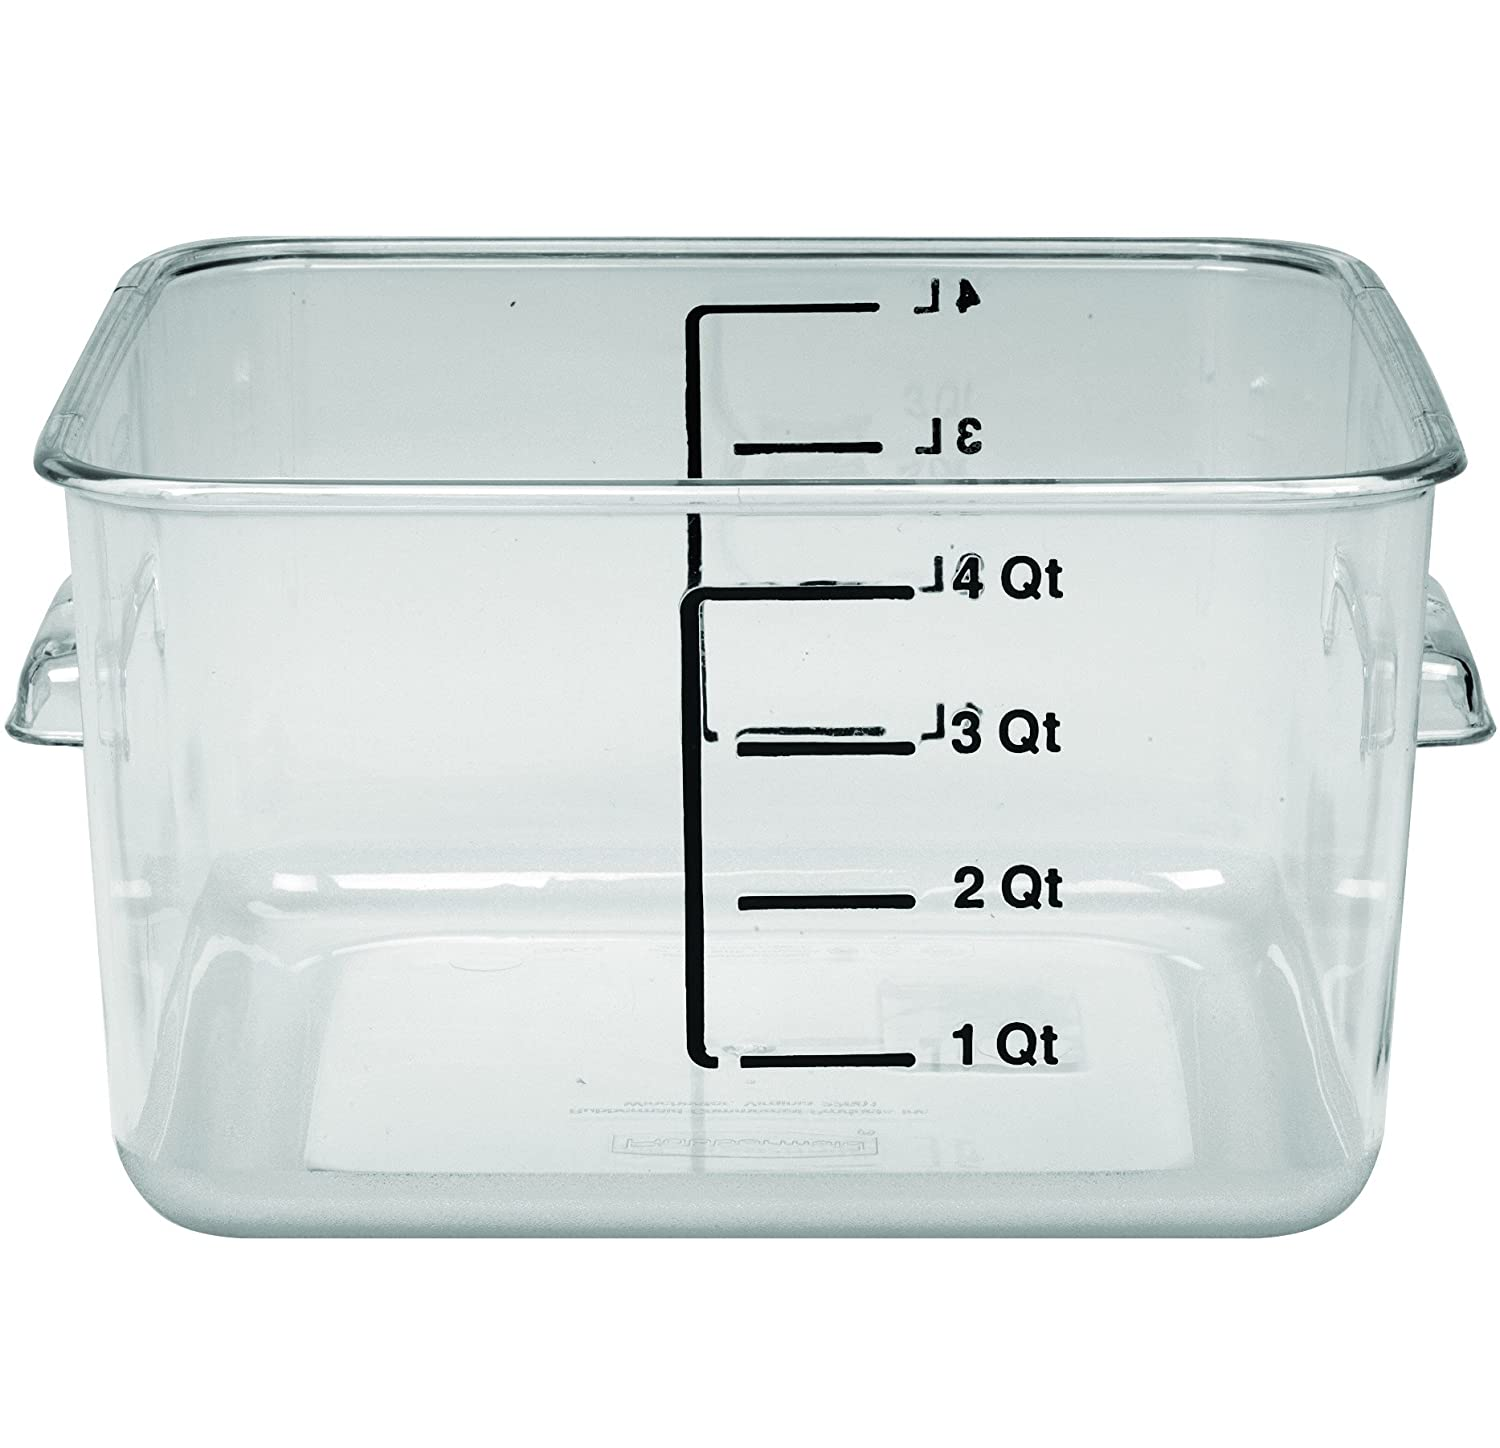 Amazon.com Rubbermaid Commercial FG630400CLR Polycarbonate 1 Gallon Space Saving Storage Container Clear Industrial u0026 Scientific  sc 1 st  Amazon.com & Amazon.com: Rubbermaid Commercial FG630400CLR Polycarbonate 1 Gallon ...